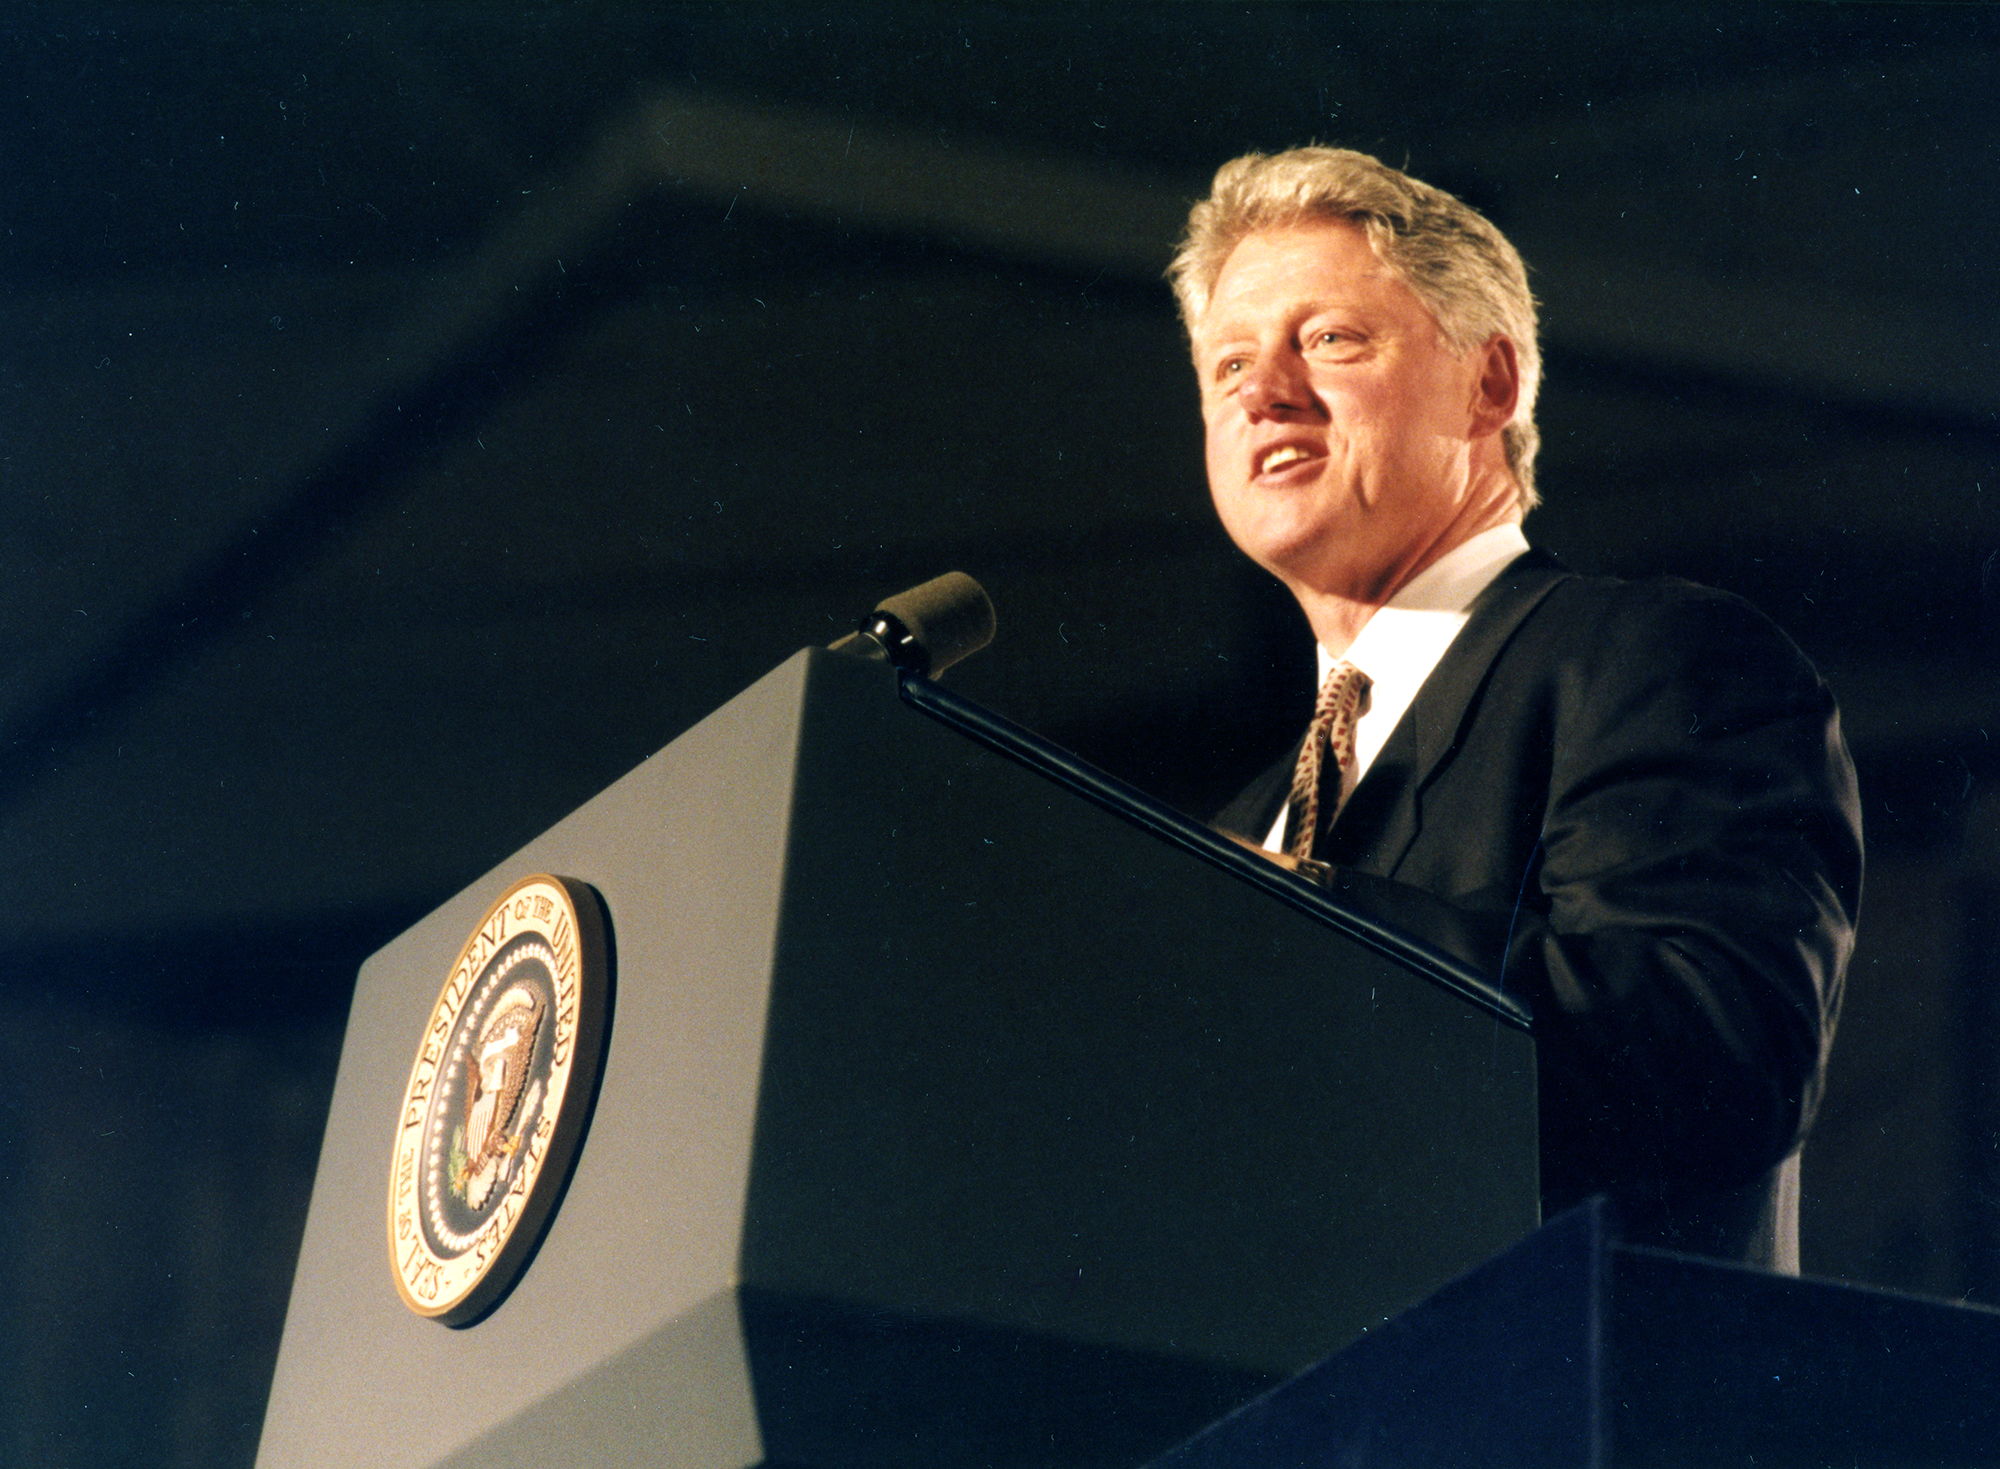 President Clinton at Podium